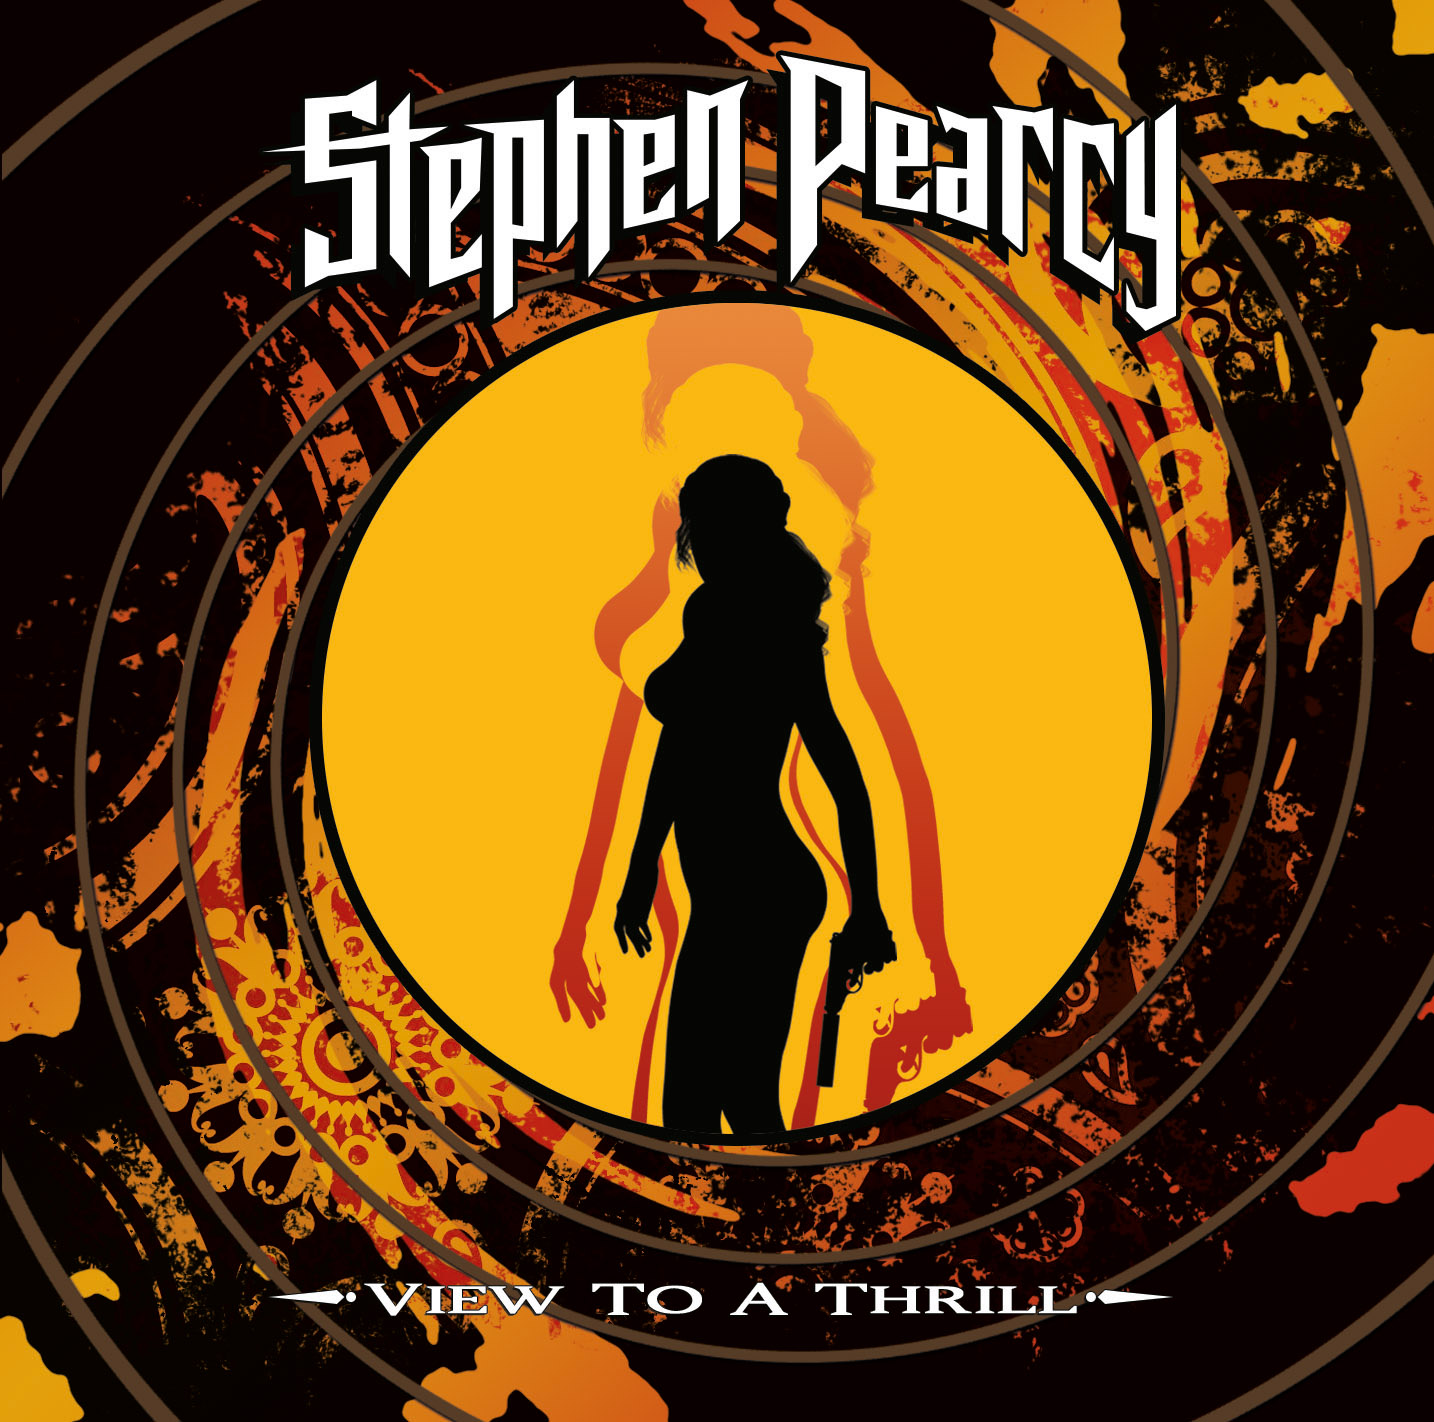 Stephen Pearcy - View To A Thrill Cover Art